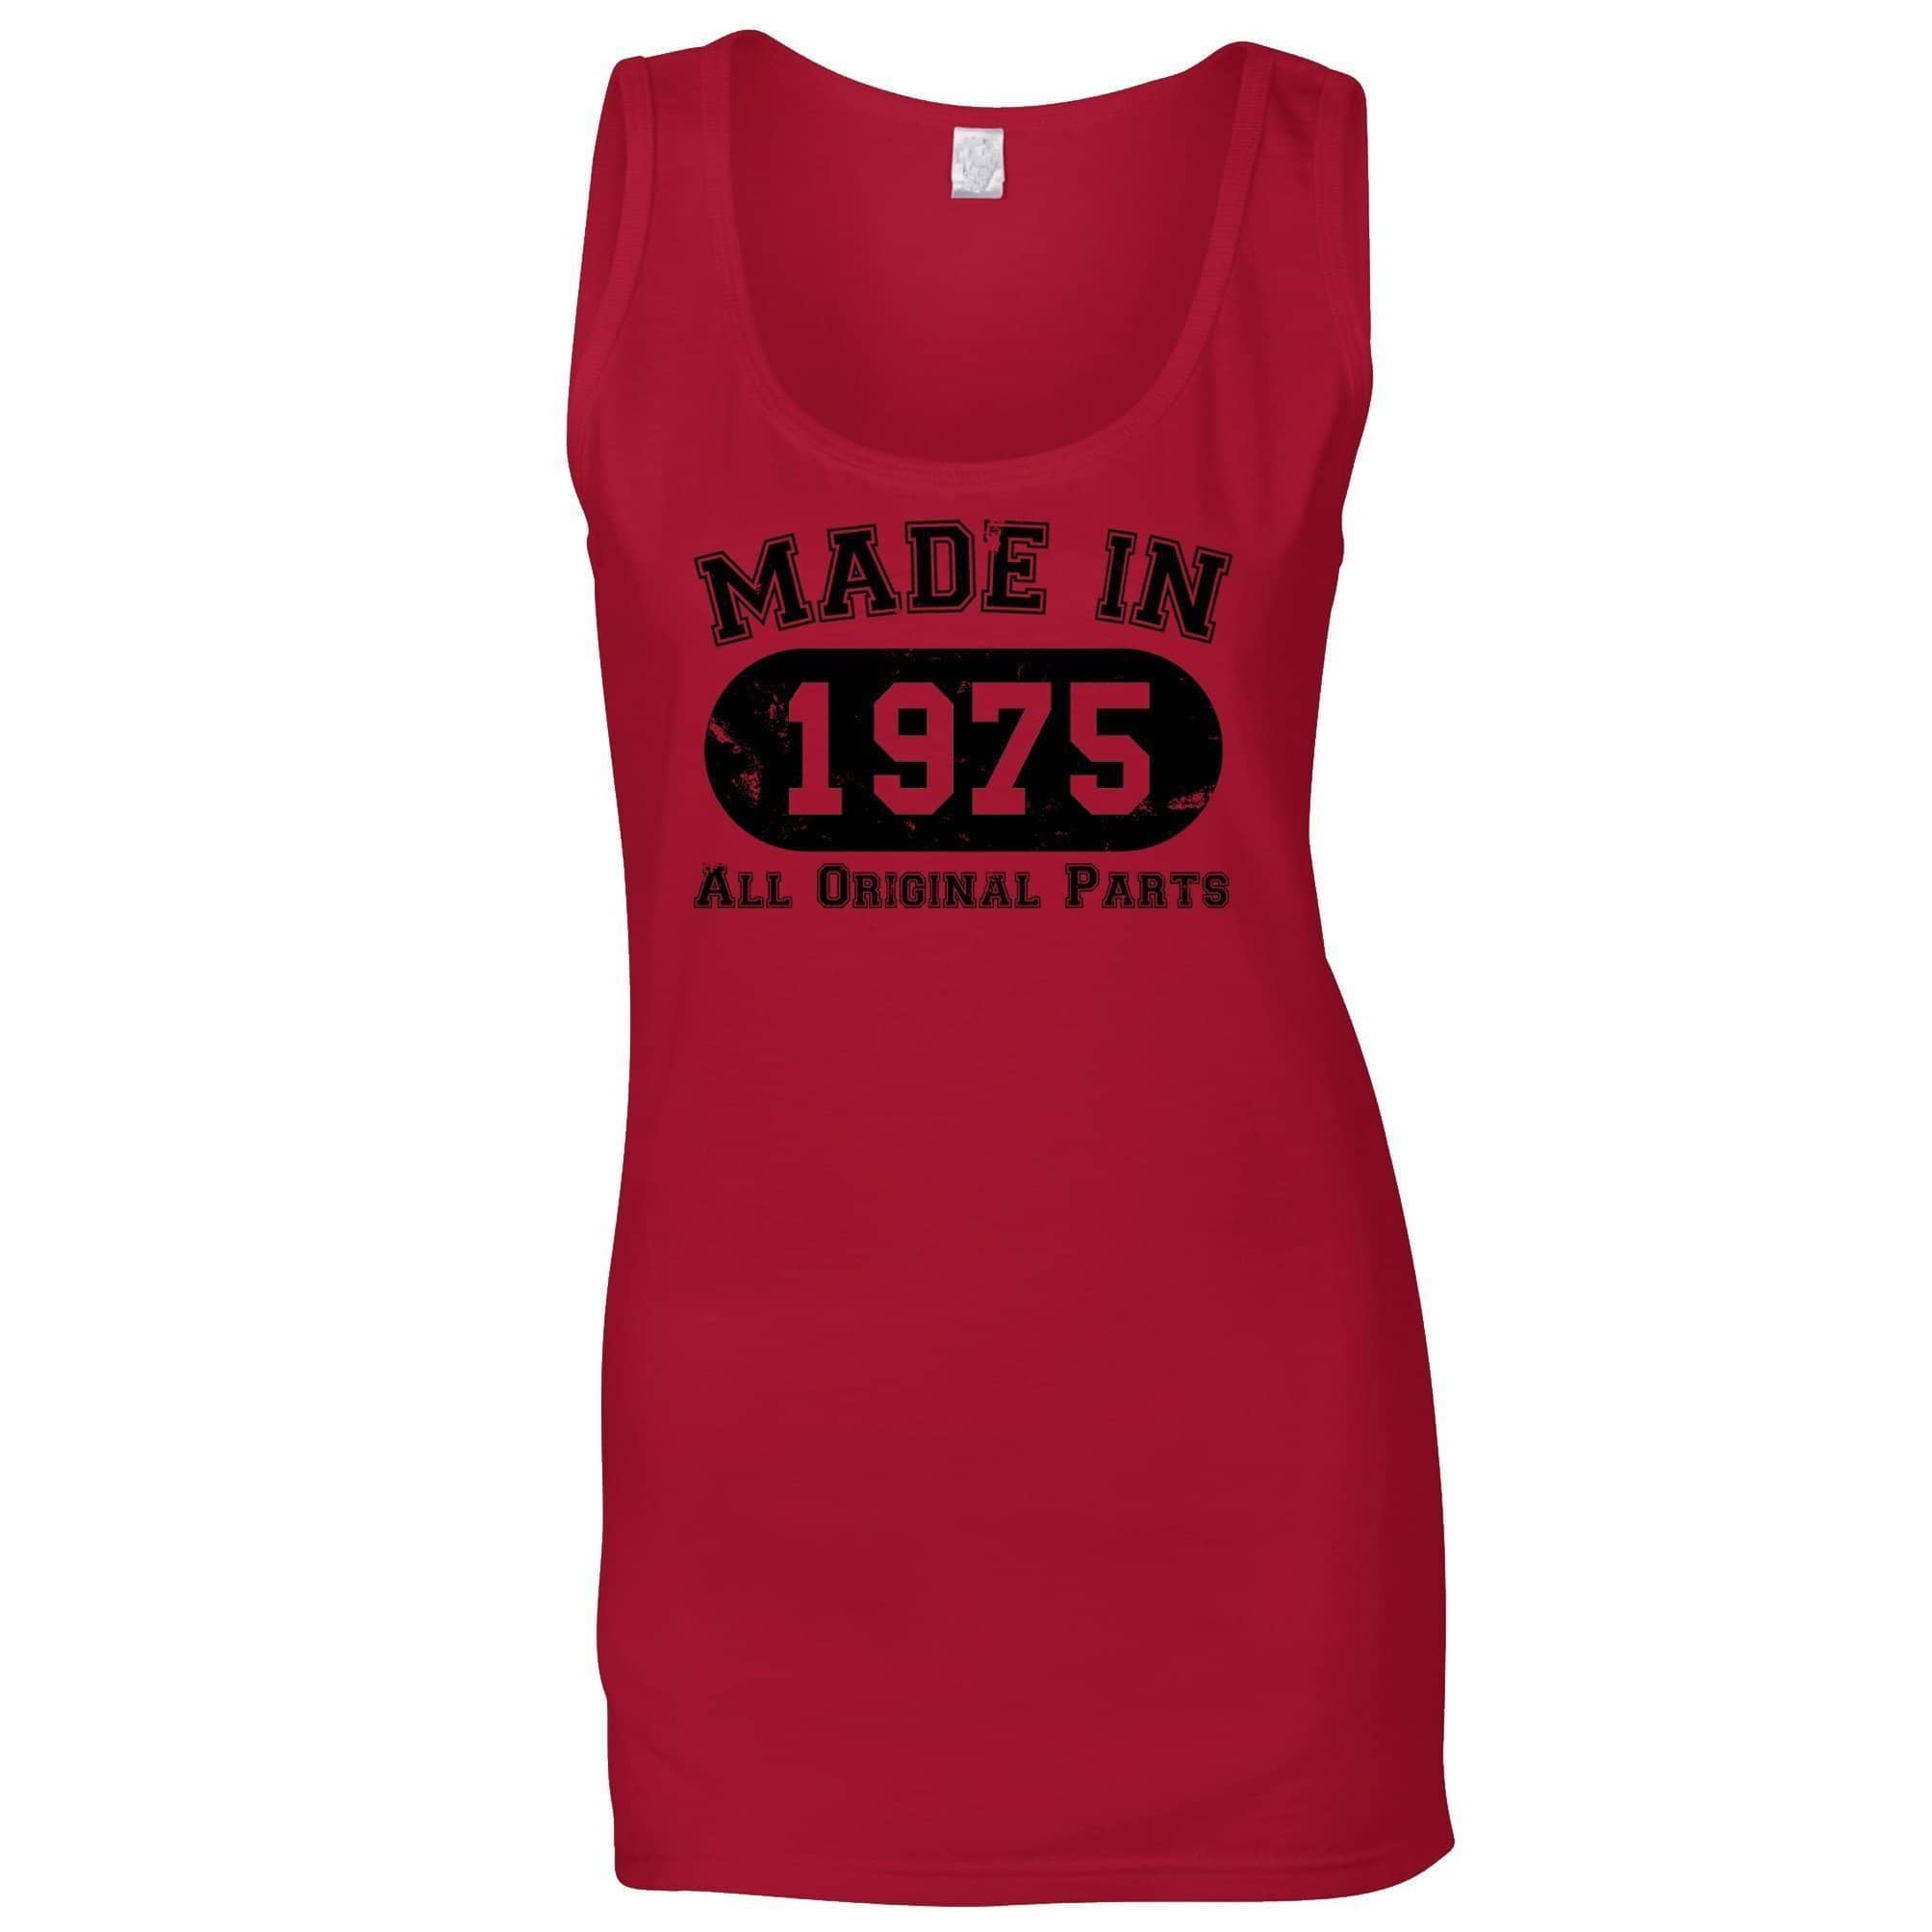 Made in 1975 All Original Parts Womens Vest [Distressed]